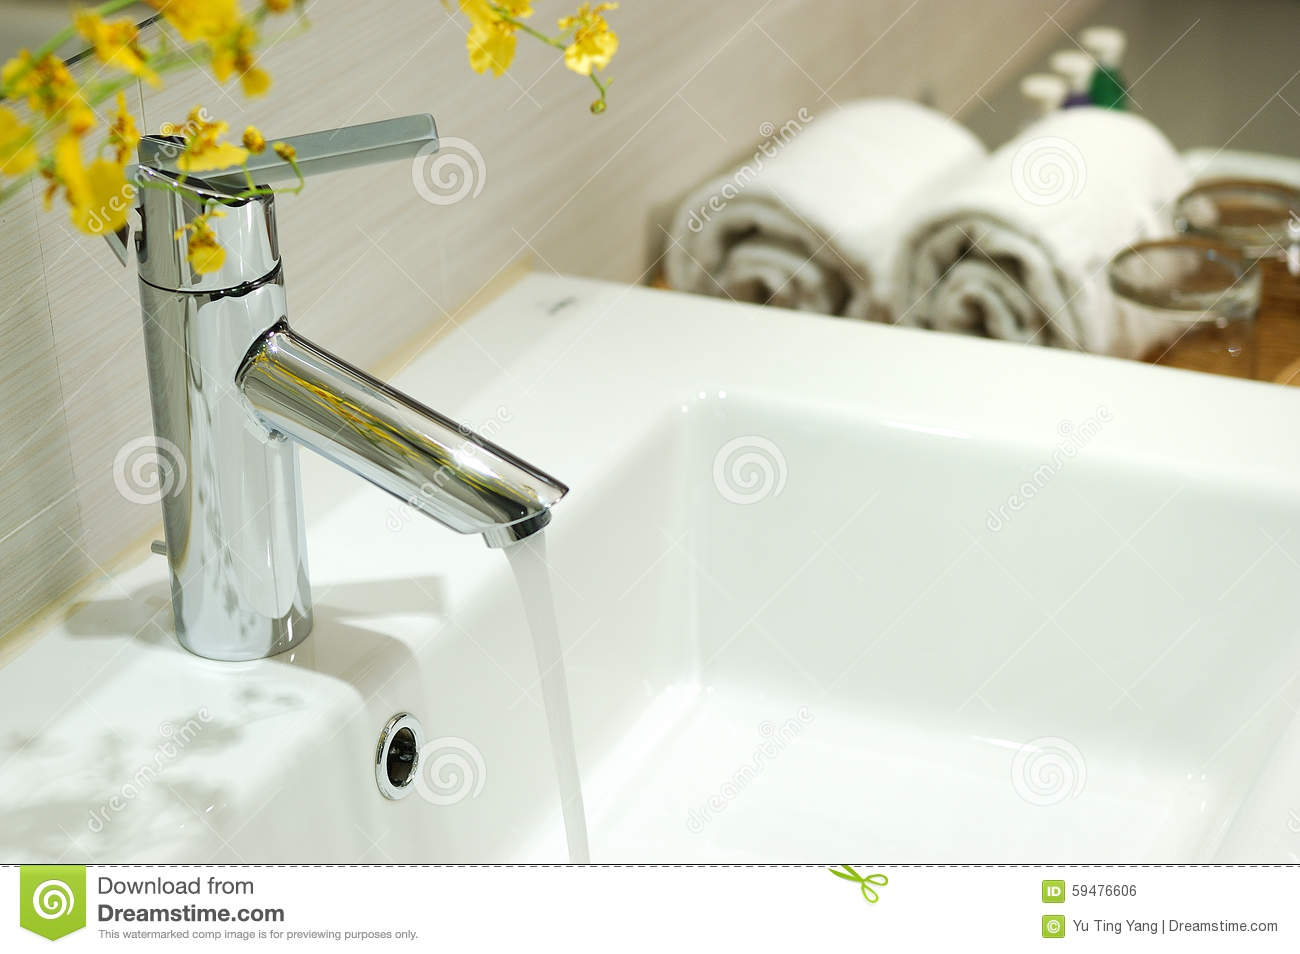 Washbasin and faucet with water drop at home.